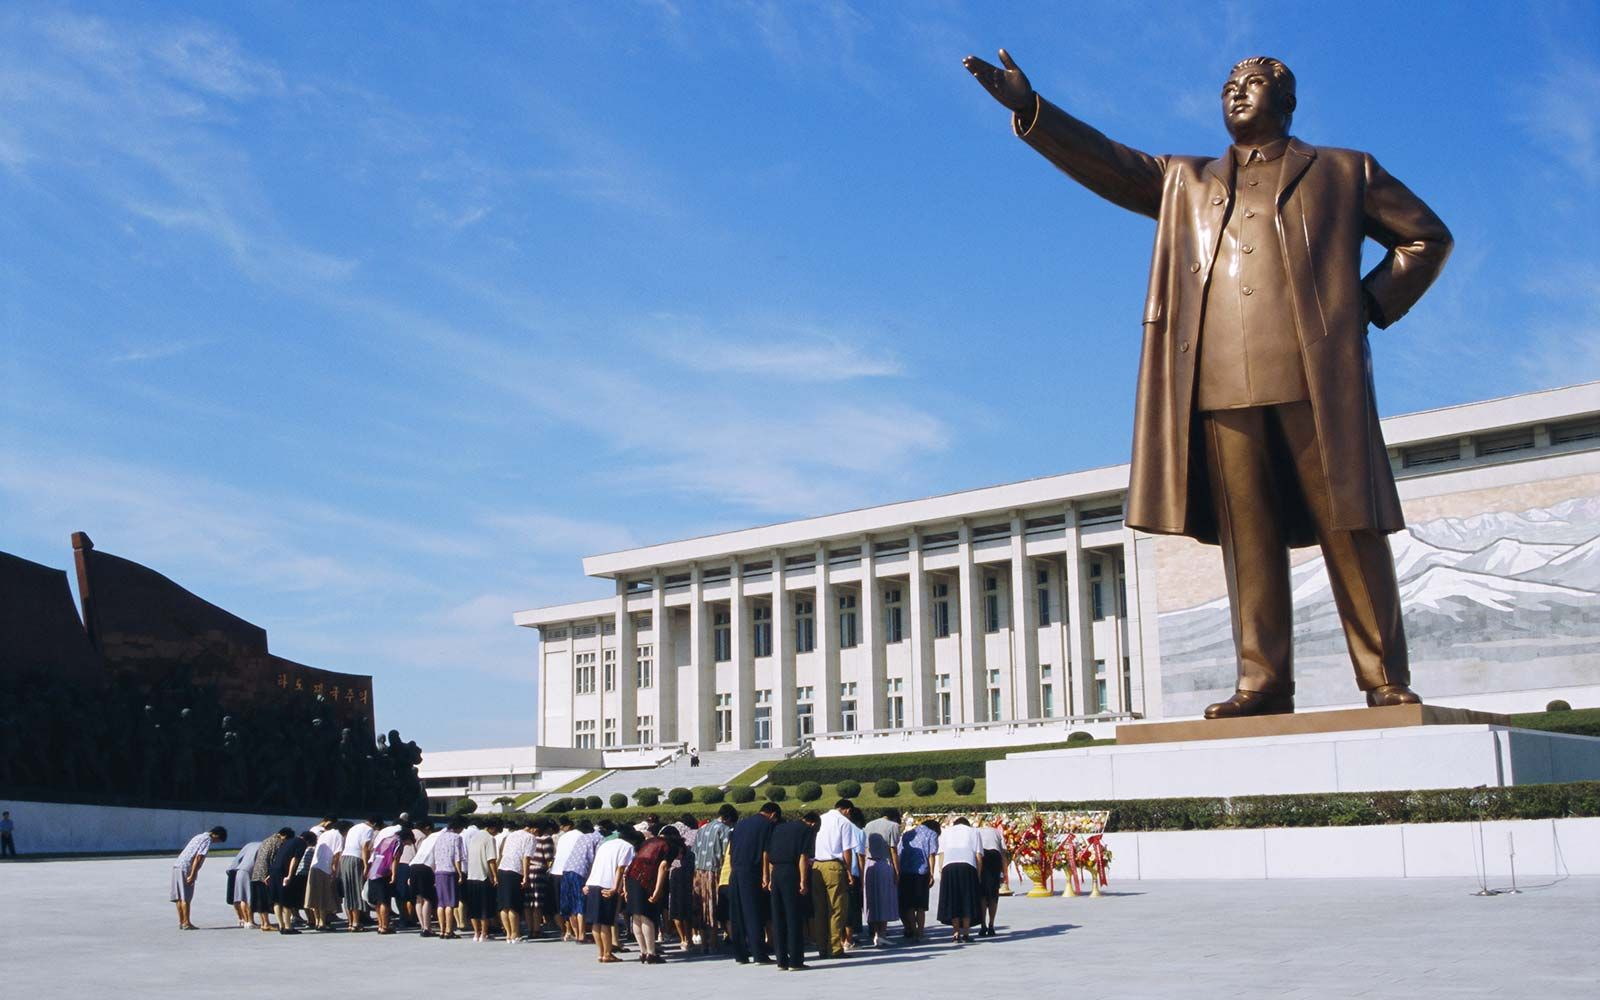 U.S. Government Considers Banning Travel to North Korea